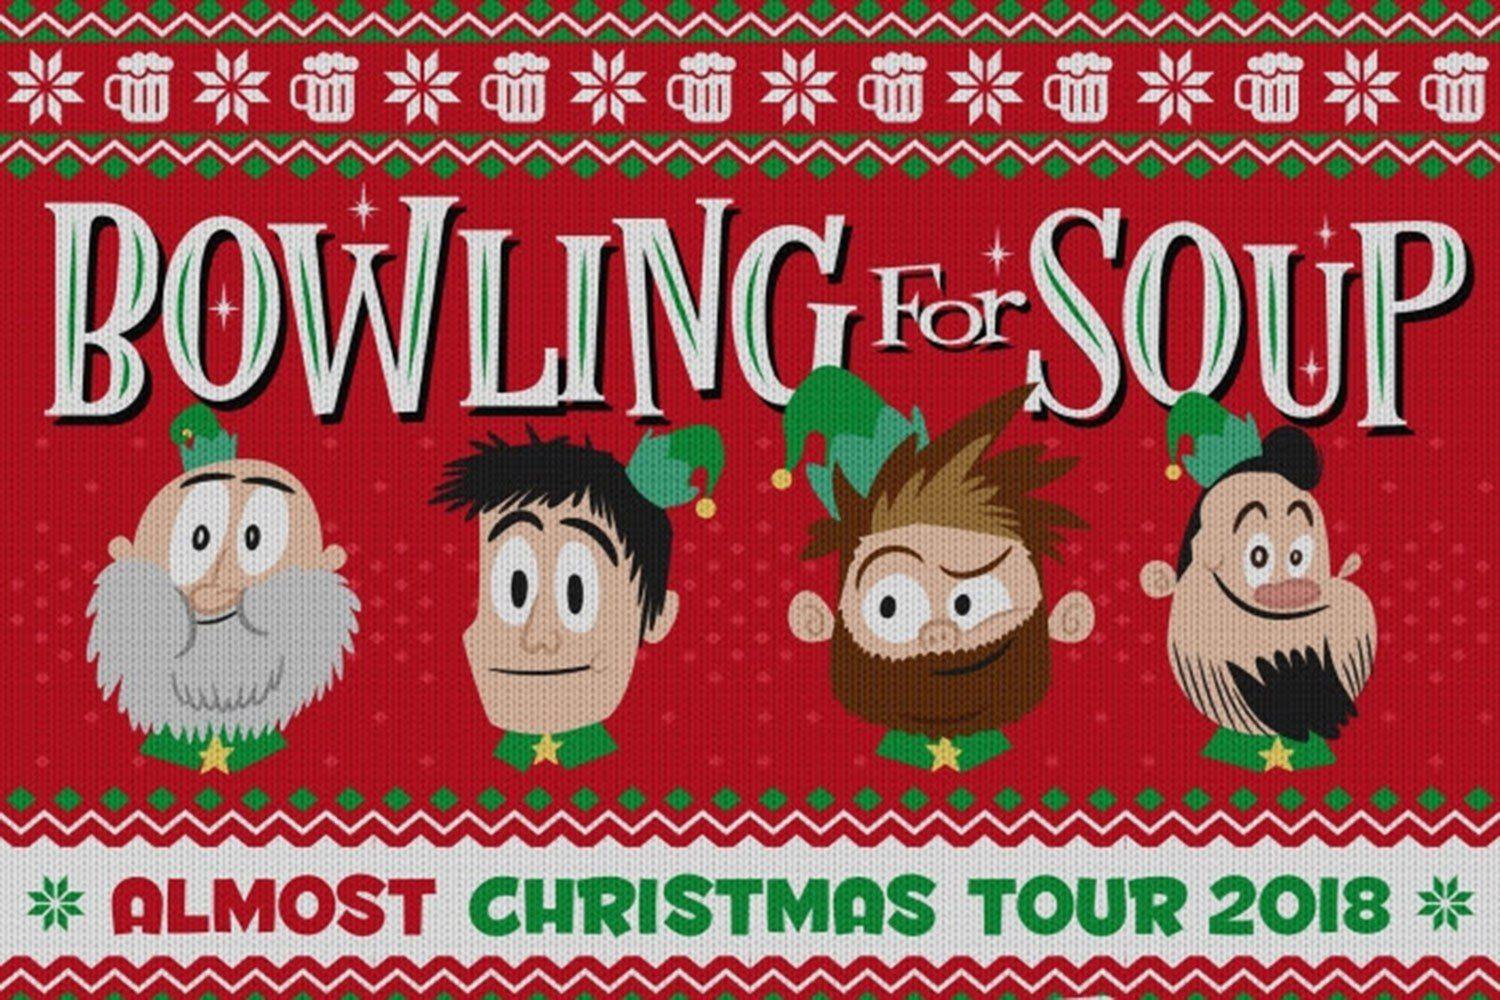 Bowling For Soup have announced a festive new UK tour